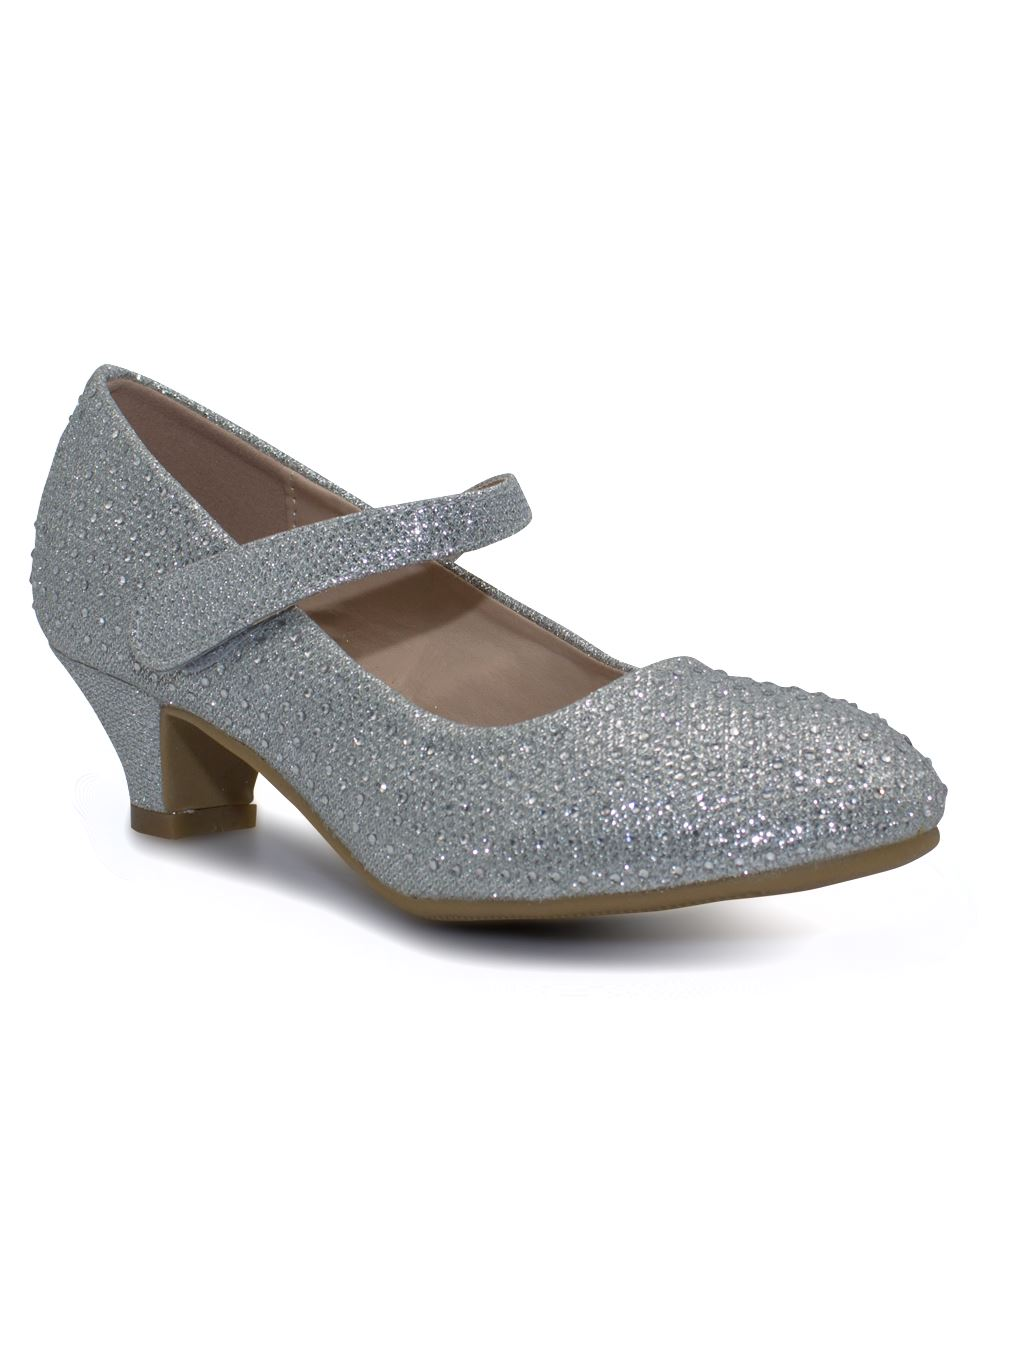 Girls-Party-Bridesmaid-Glitter-Diamante-Wedding-Block-Low-Heel-Shoes miniatura 4